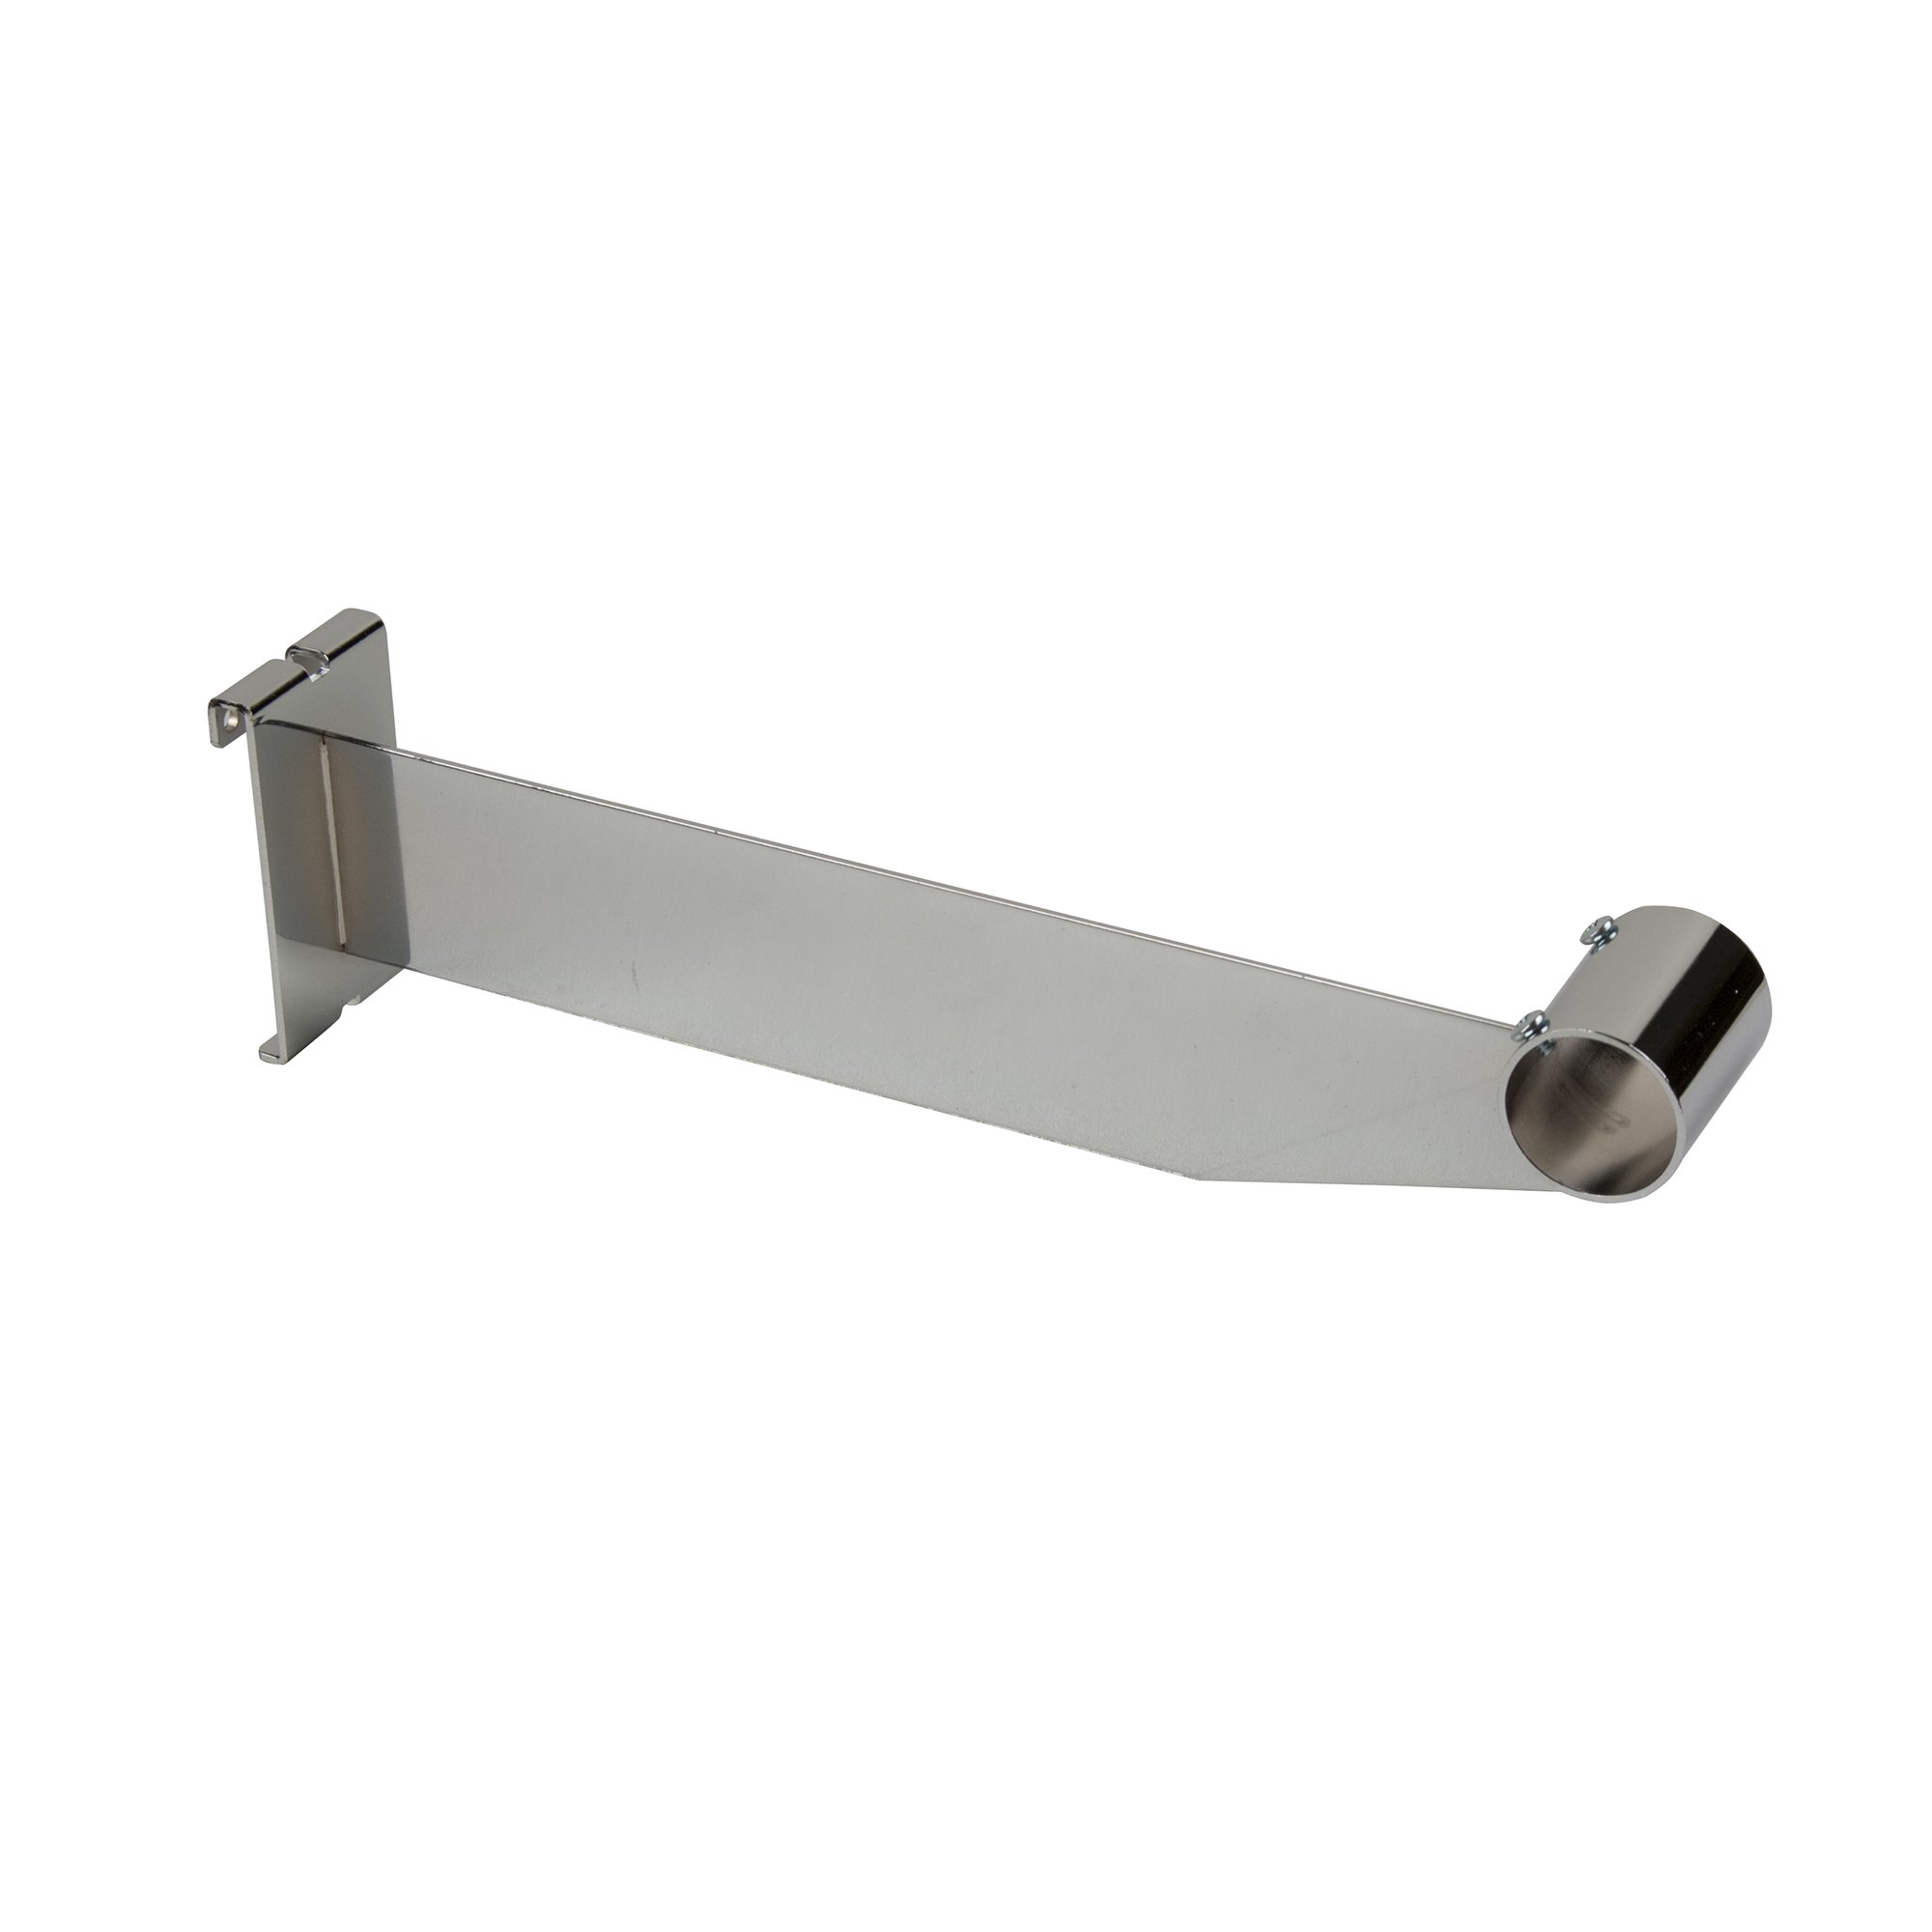 "Econoco Hangrail Bracket for 1-1/4"" Round Tubing, 12"" (Pack of 24)"